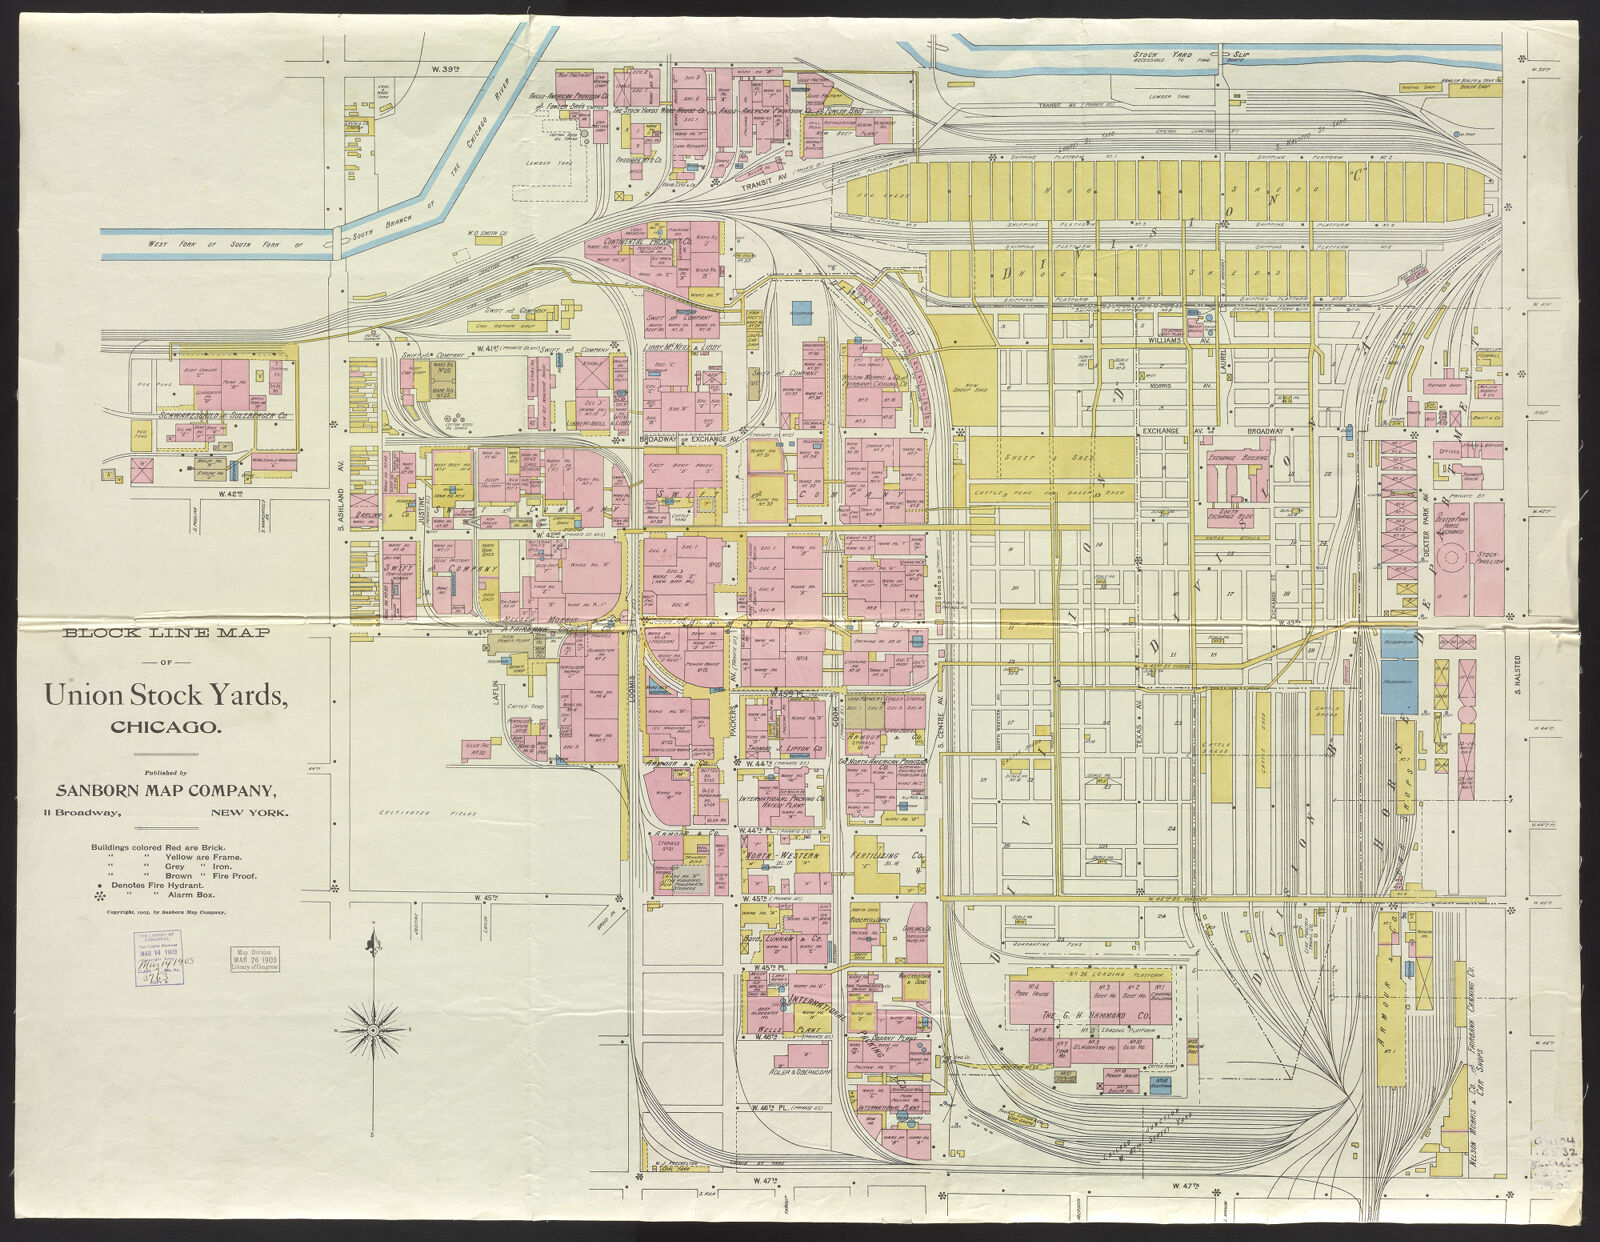 Block Line Map Of Union Stock Yards Chicago Digital Collections